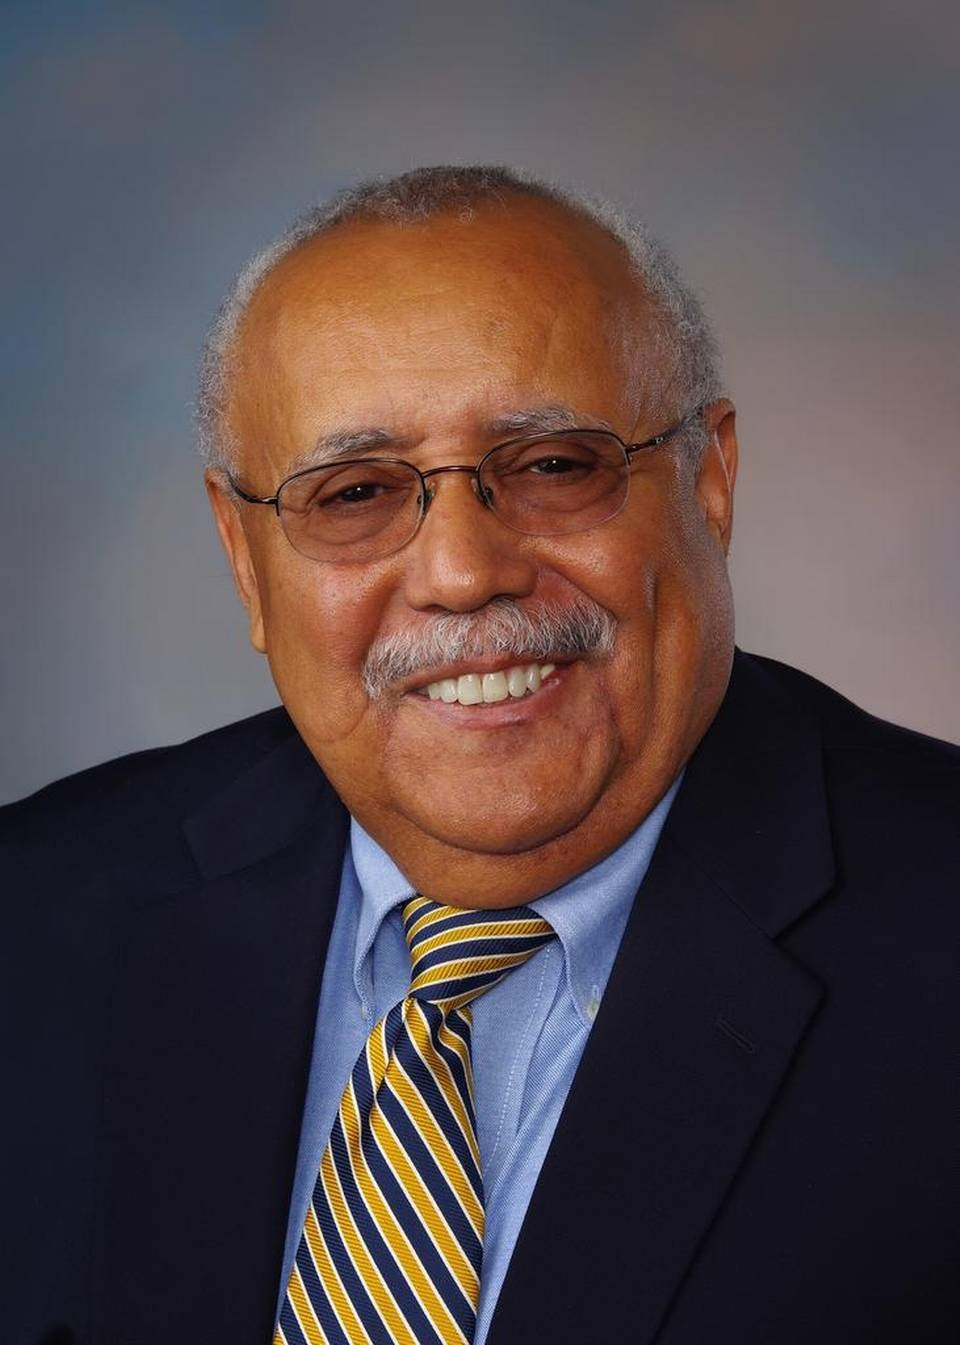 CLARENCE WASHINGTON, M.D. '71, JOINS TRIOS MEDICAL GROUP IN KENNEWICK, WA